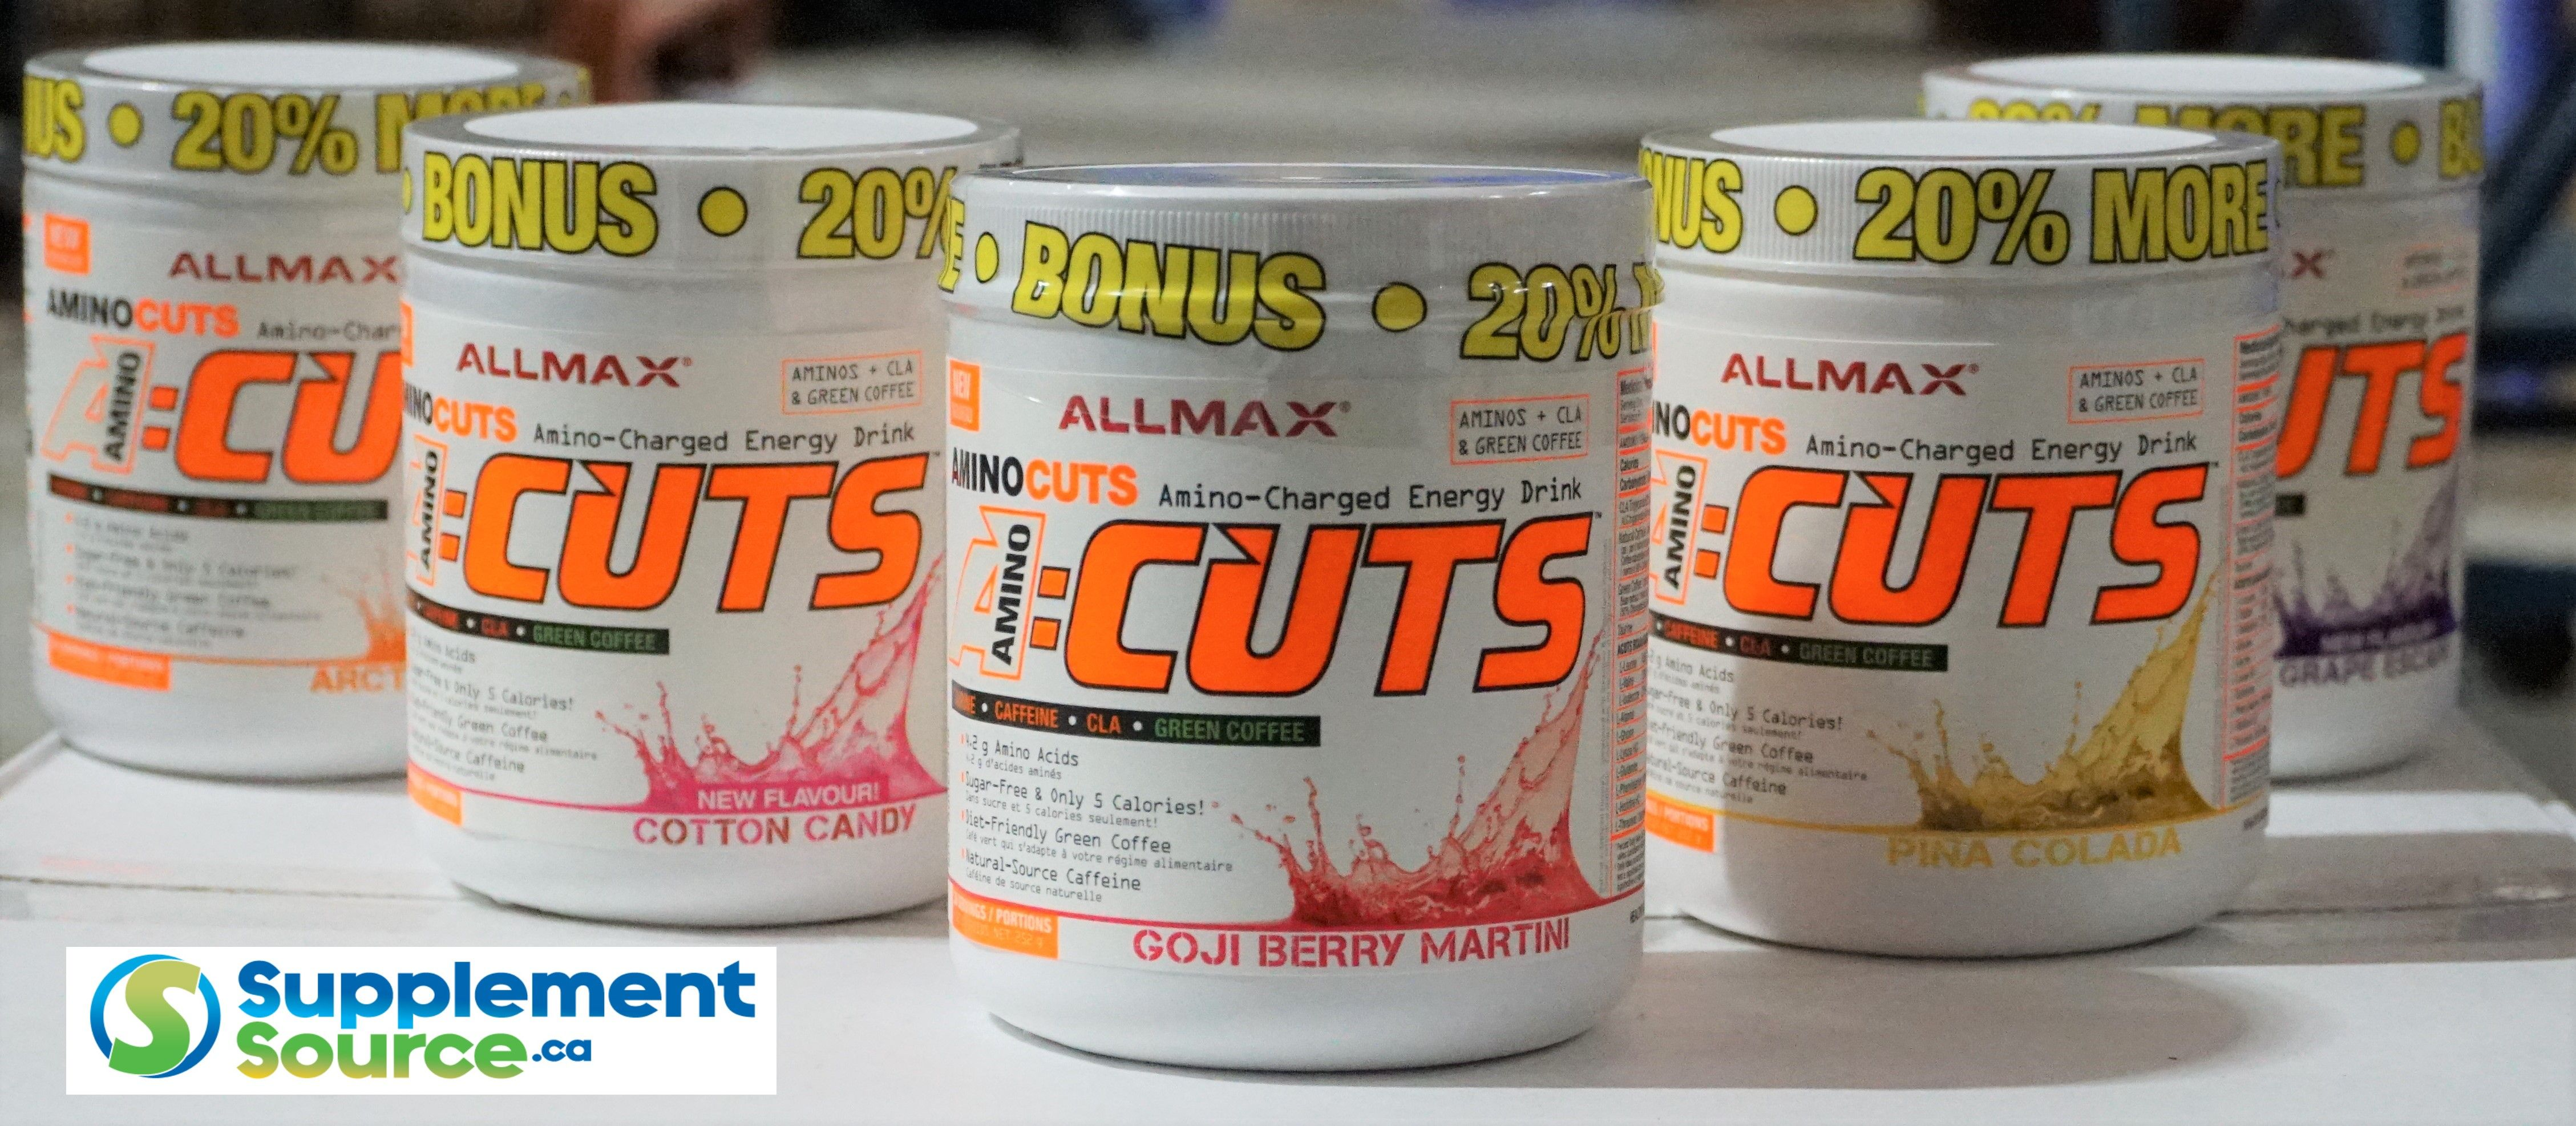 Aminocuts could be the most delicious drink mix weve ever